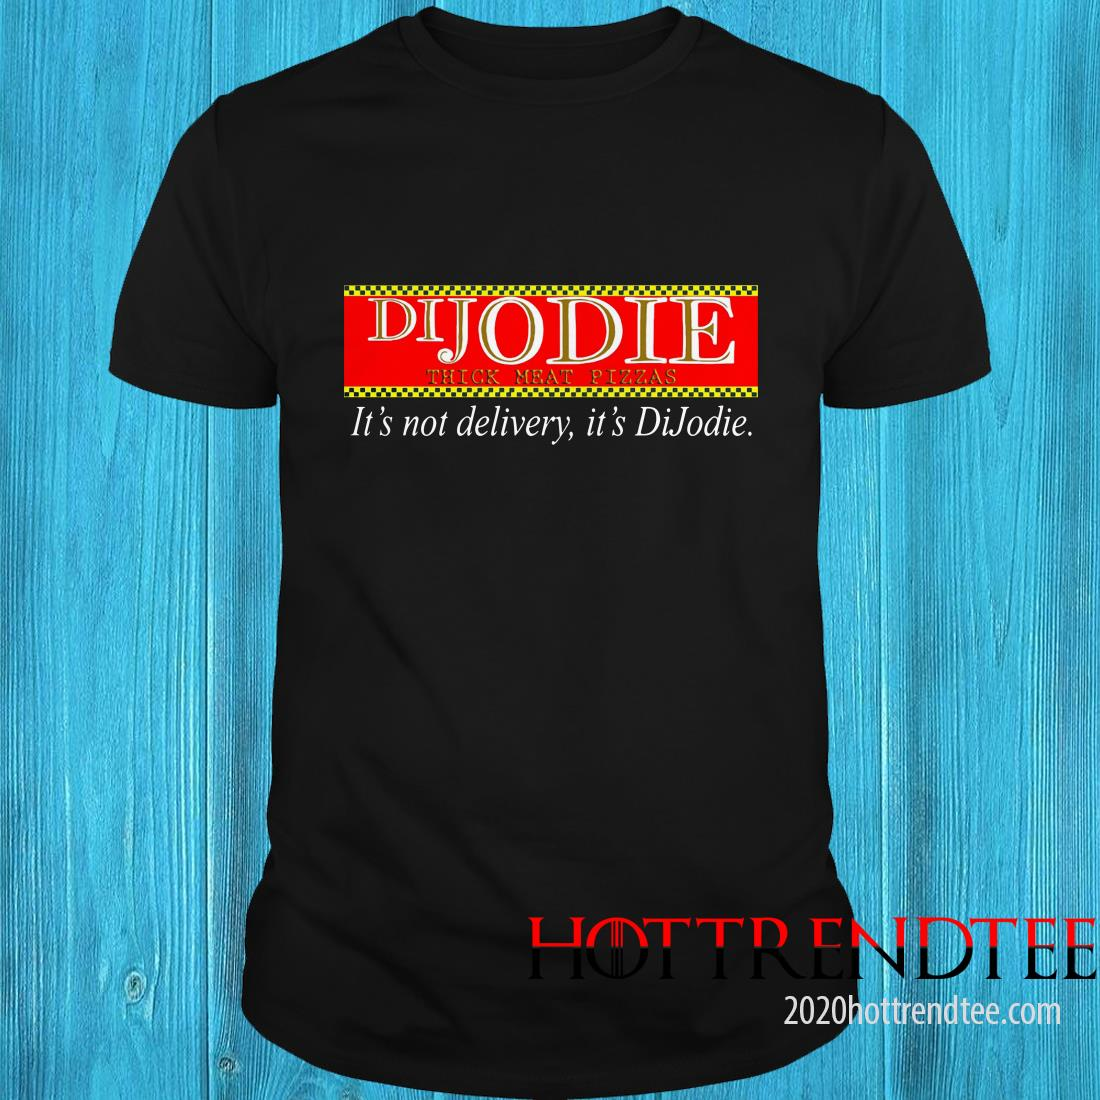 DIJODIE think meat pizzas it's not delivery it's DiJodie shirt